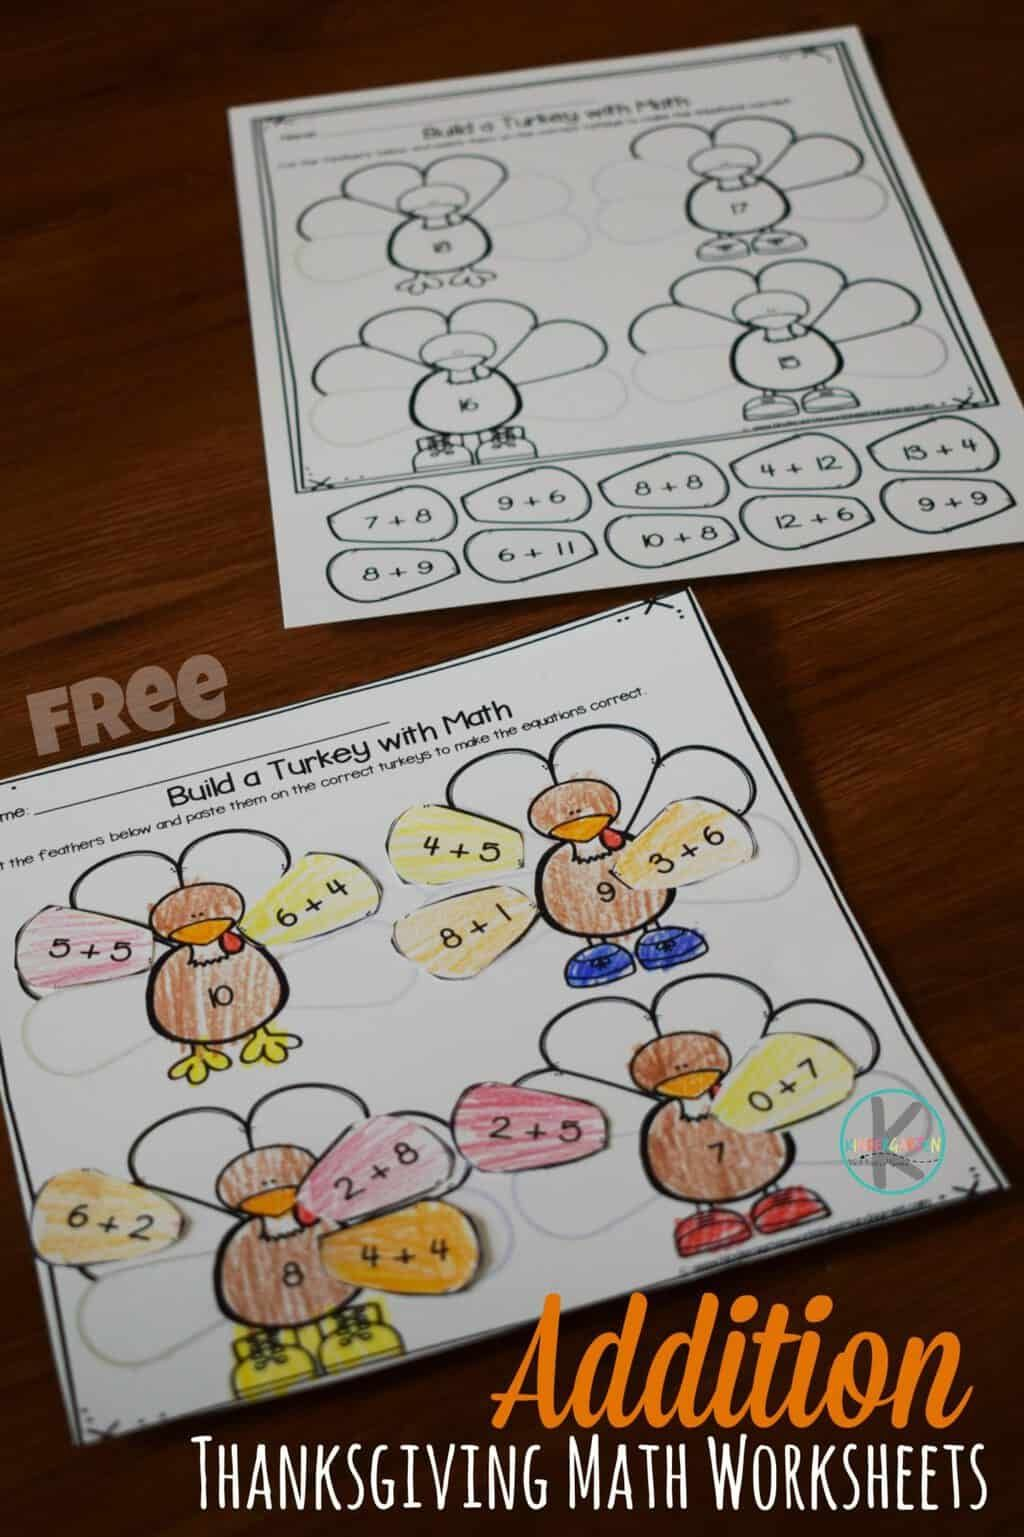 Free Addition Thanksgiving Math Worksheets